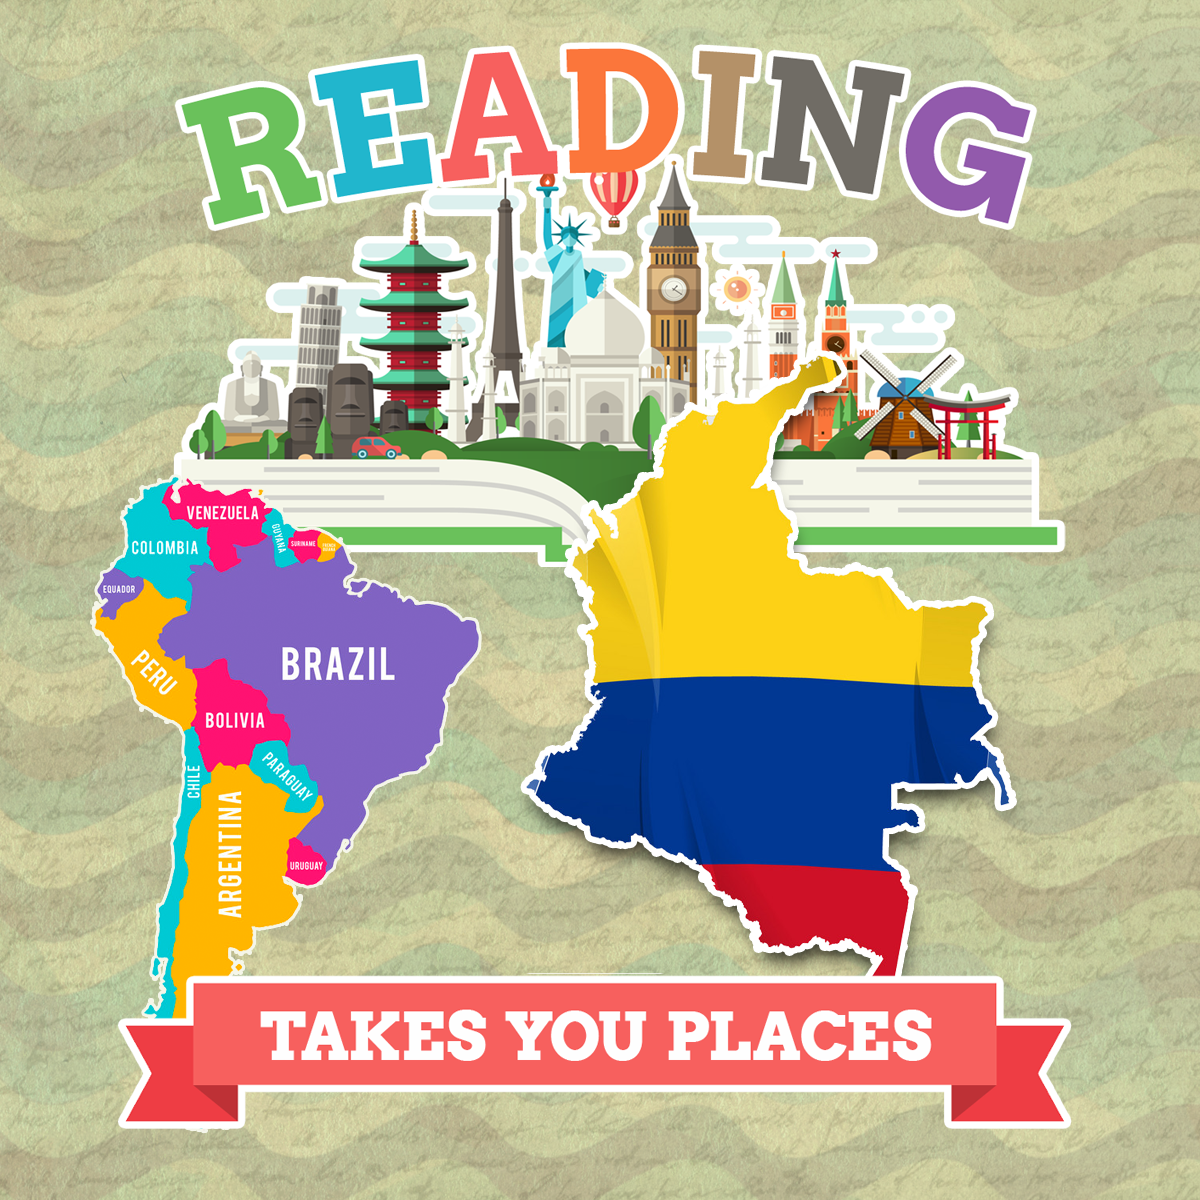 This week we are visiting Columbia for summer reading!